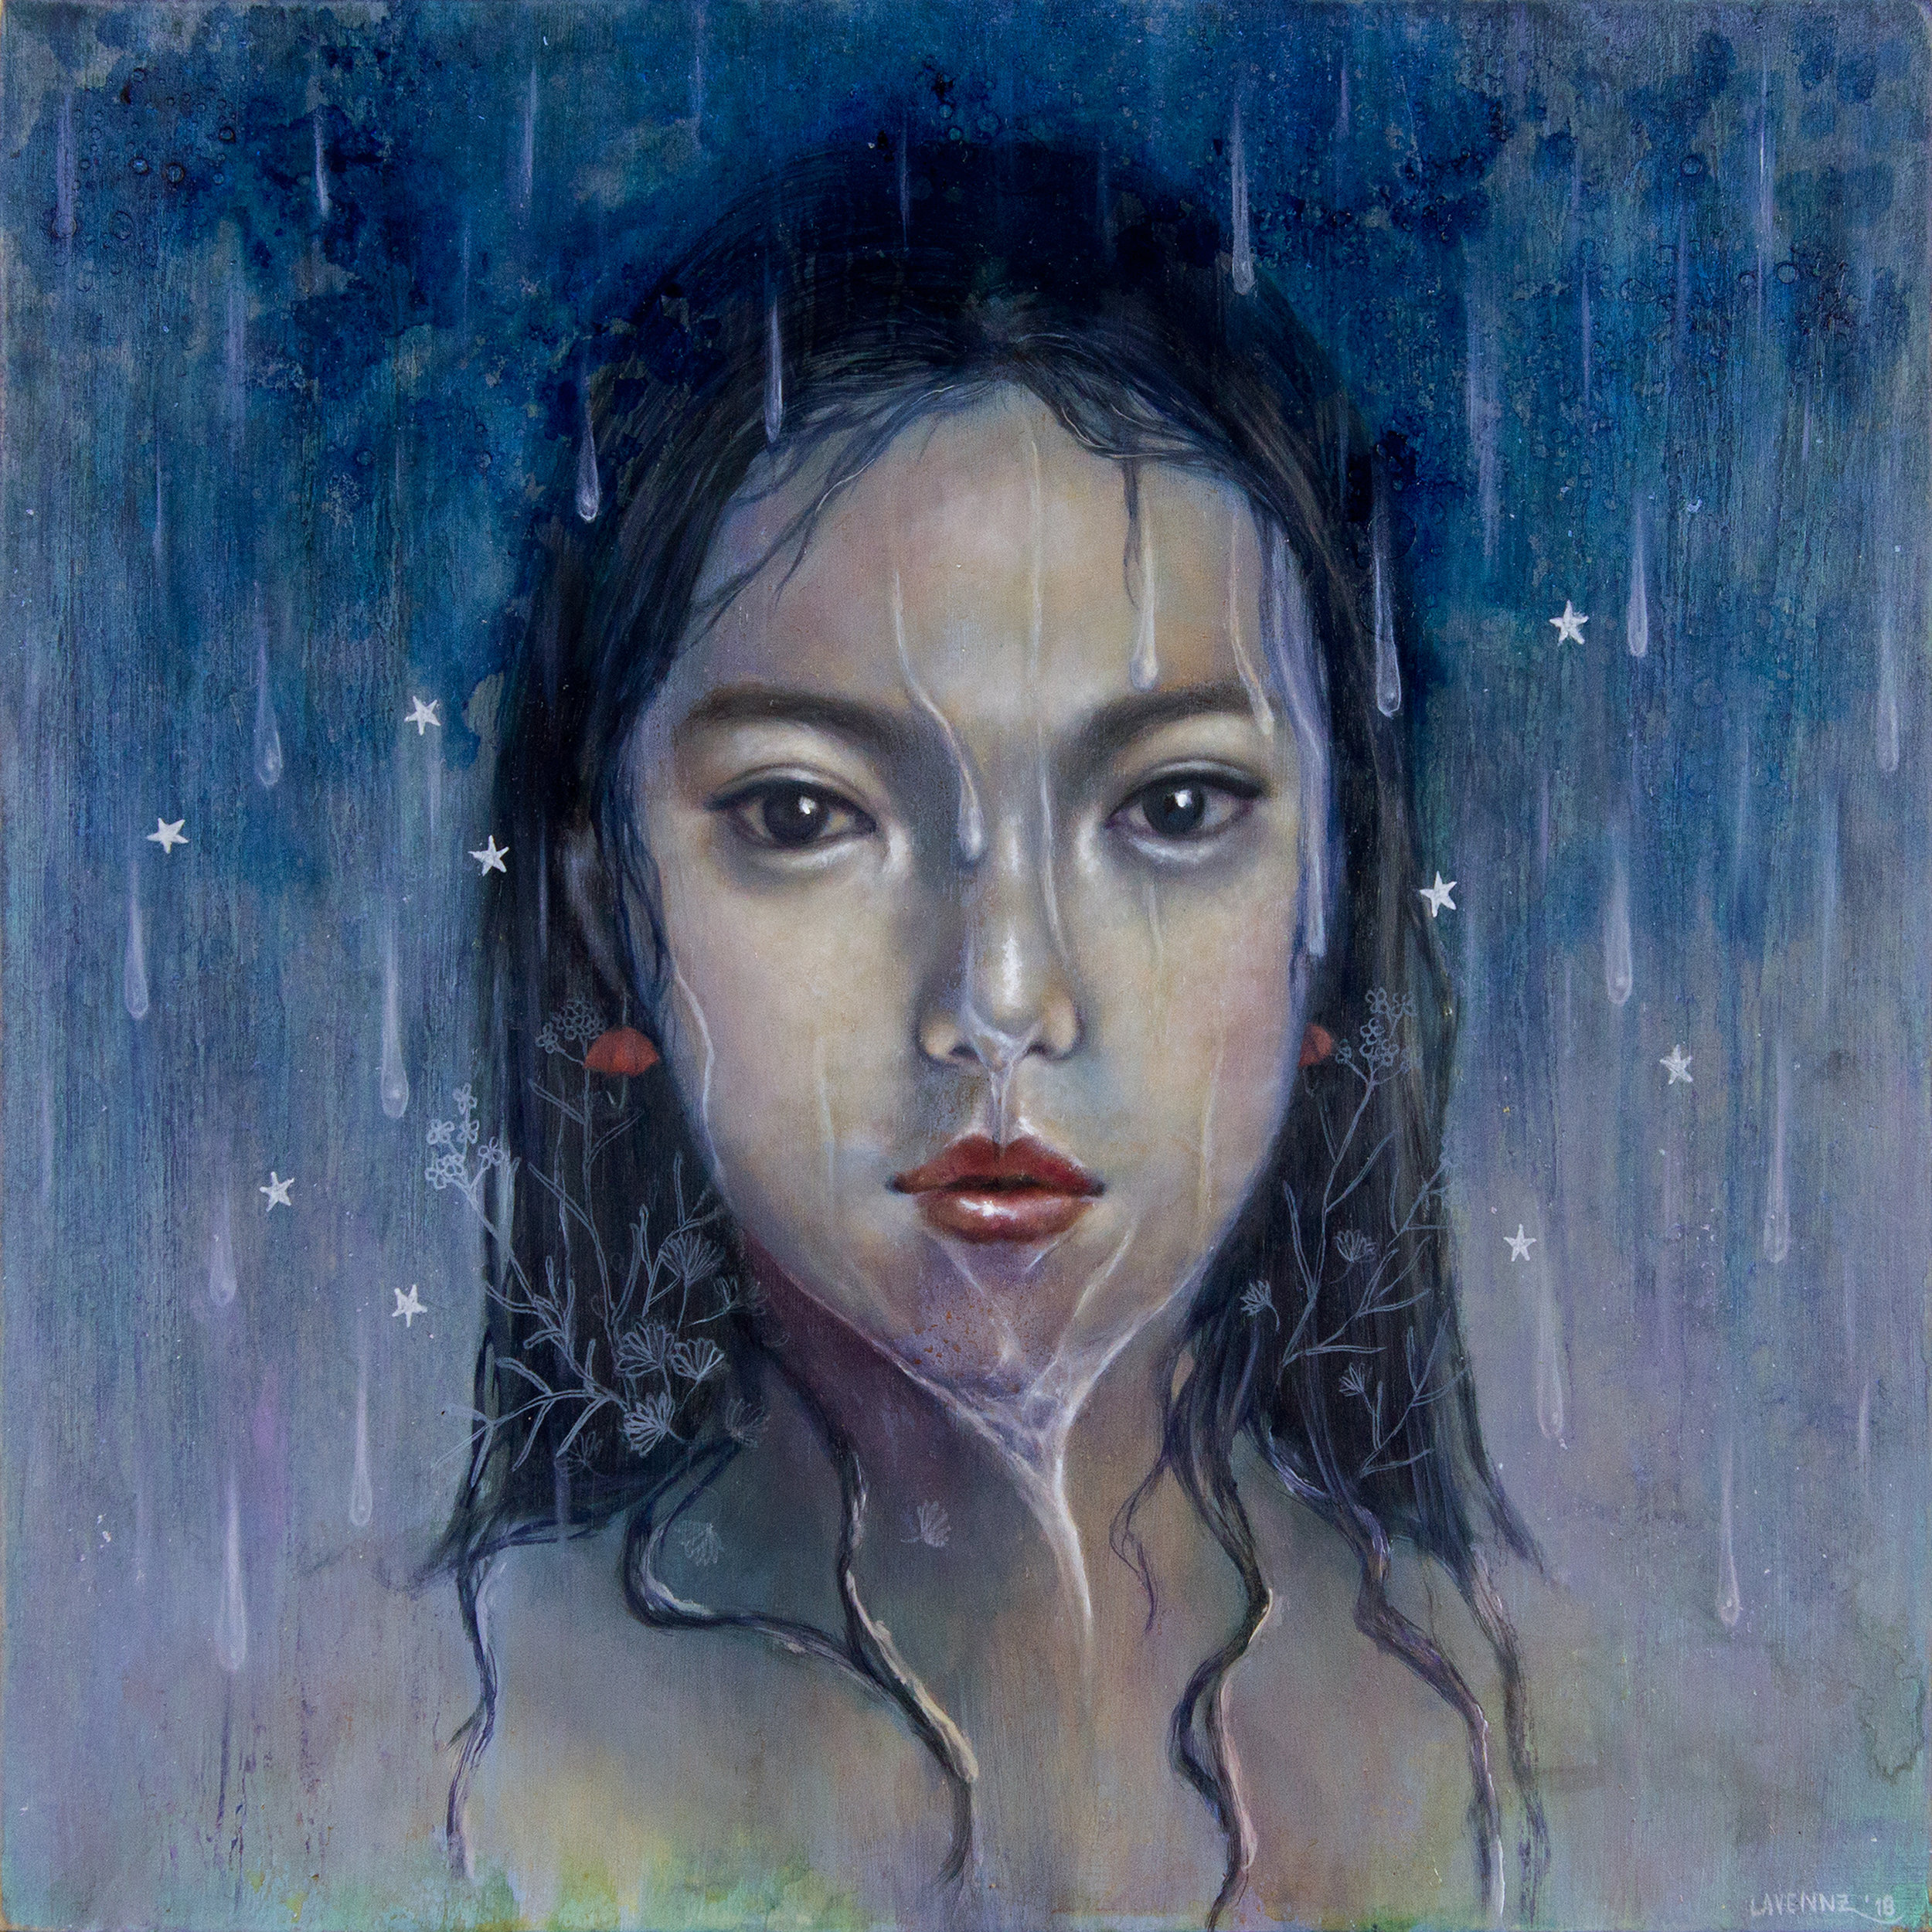 """""""In The Rain"""", oil & acrylic painting on wood by artist, Lavennz Ooi, 2018 for Perfect 10 Group Show in La Bodega Gallery in San Diego, California."""